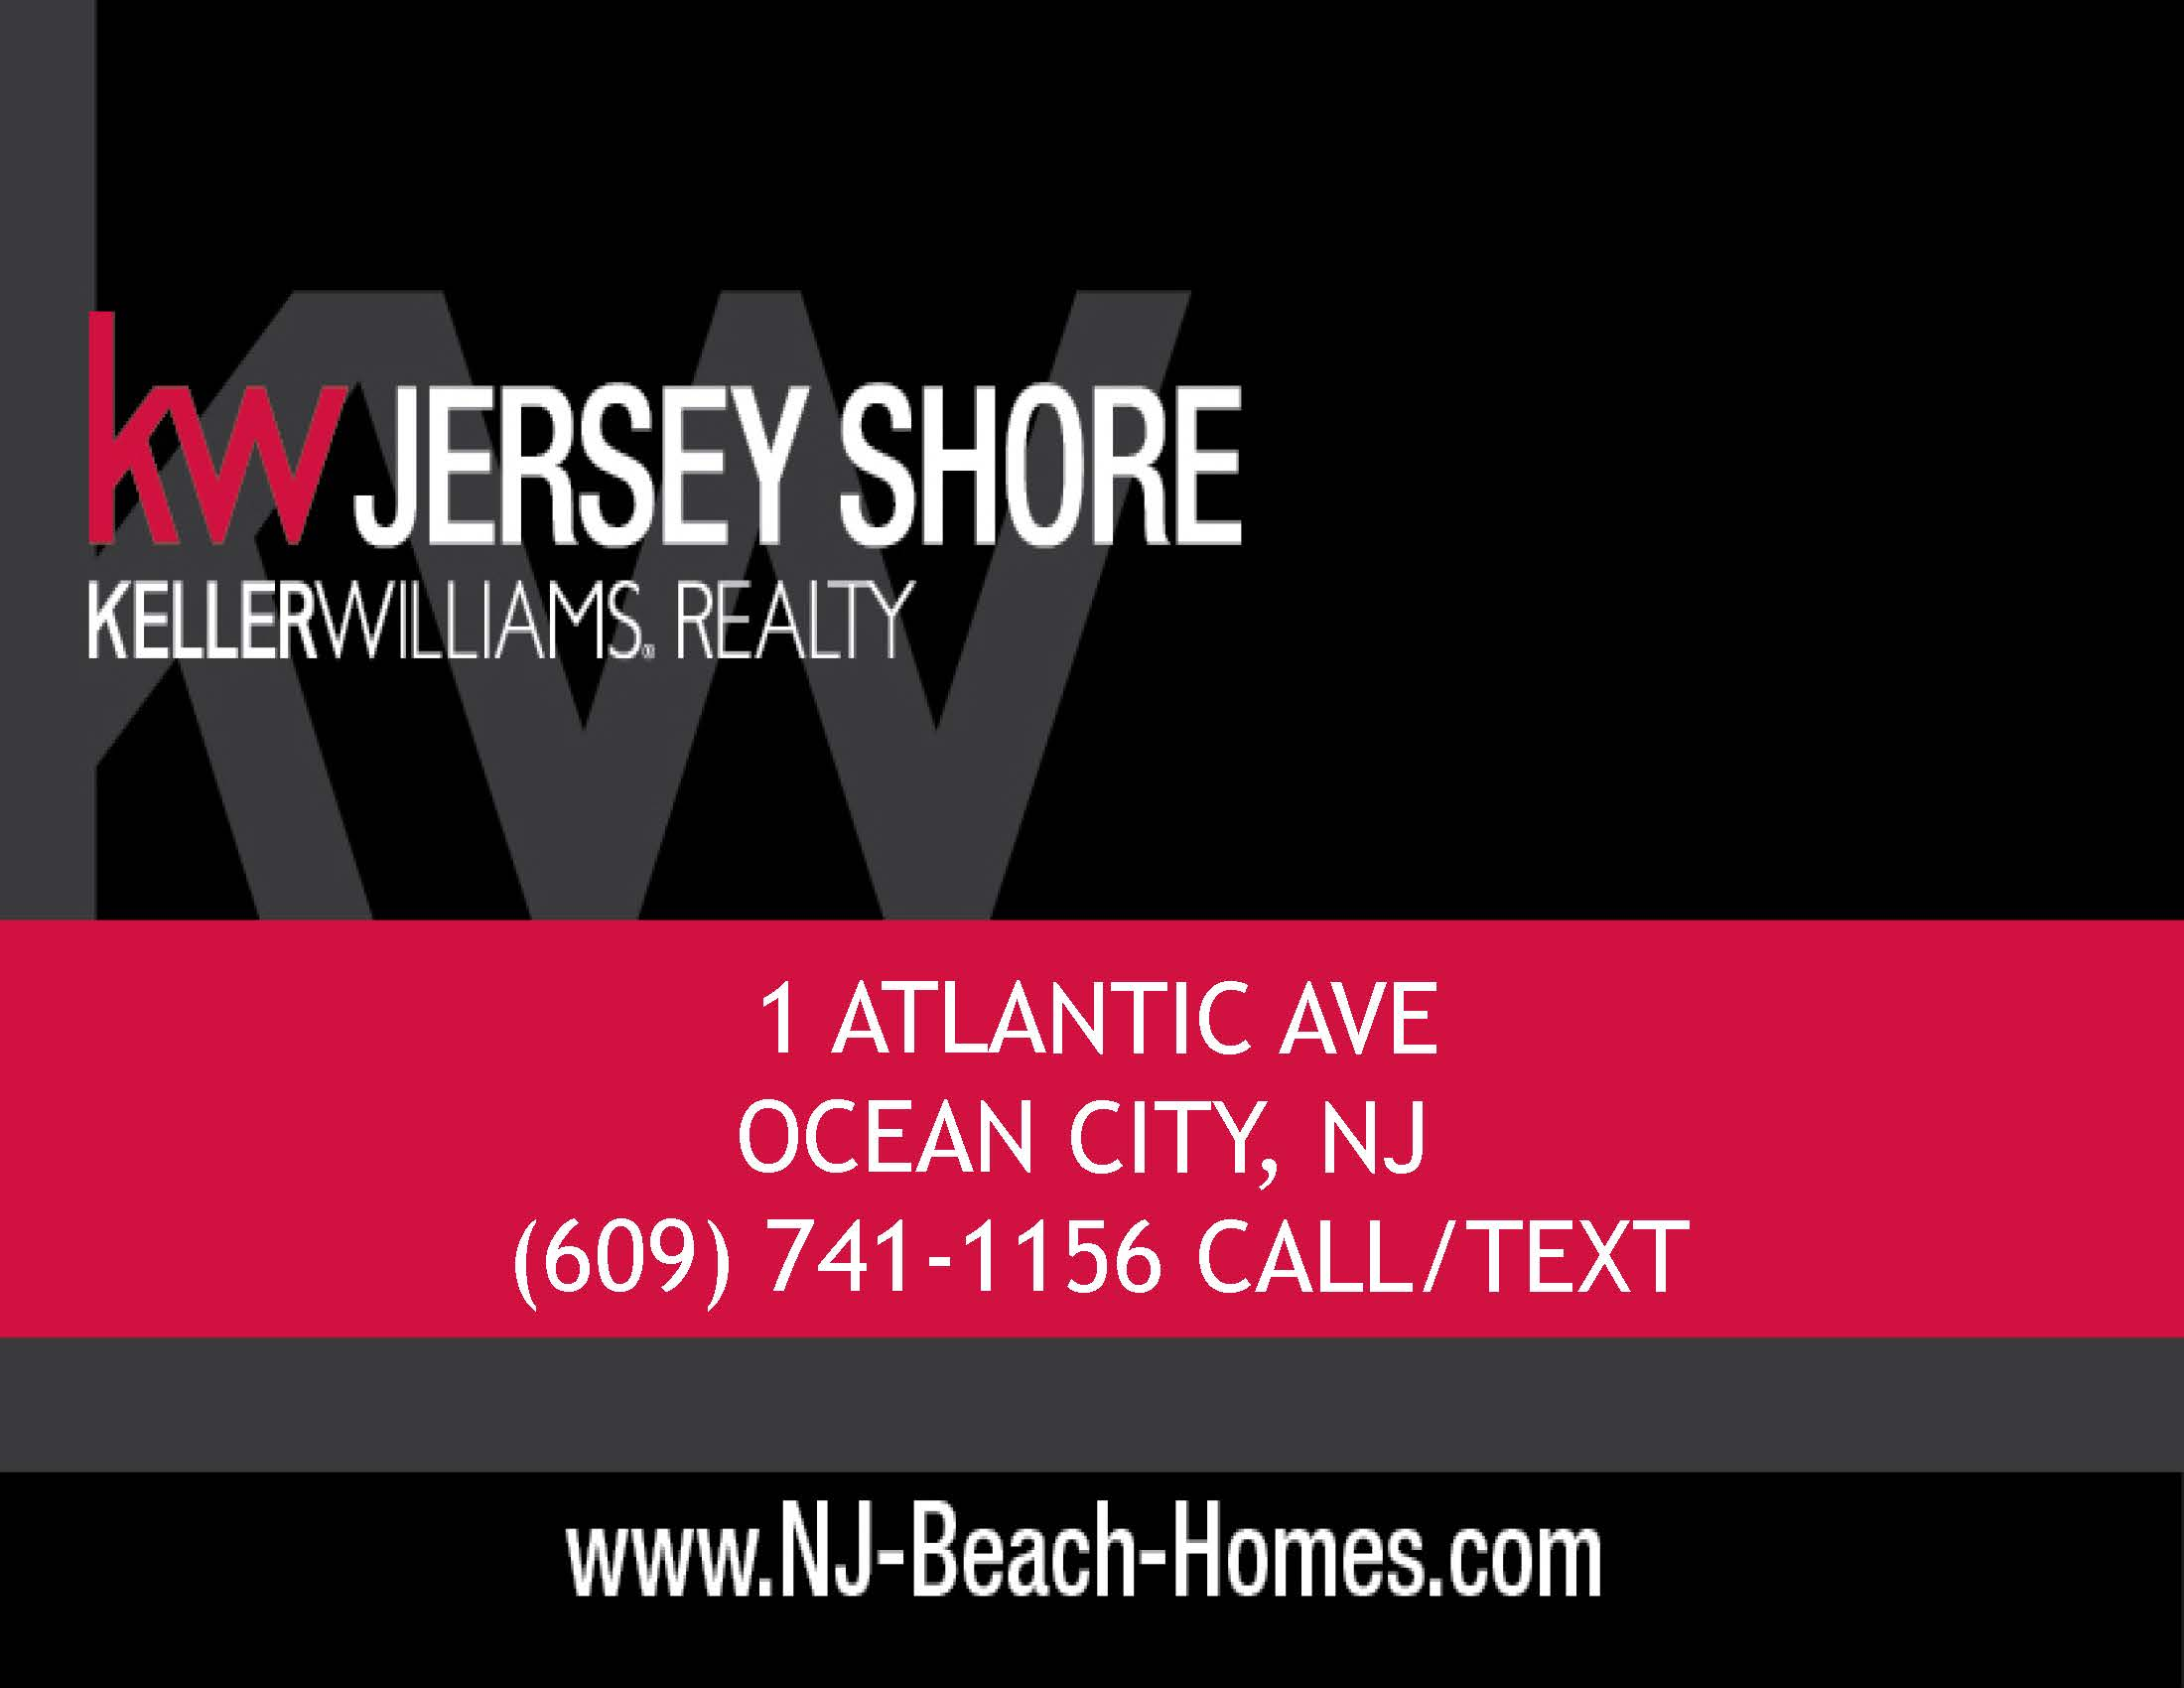 Keller Williams Jersey Shore, Chris Pustizzi realtor